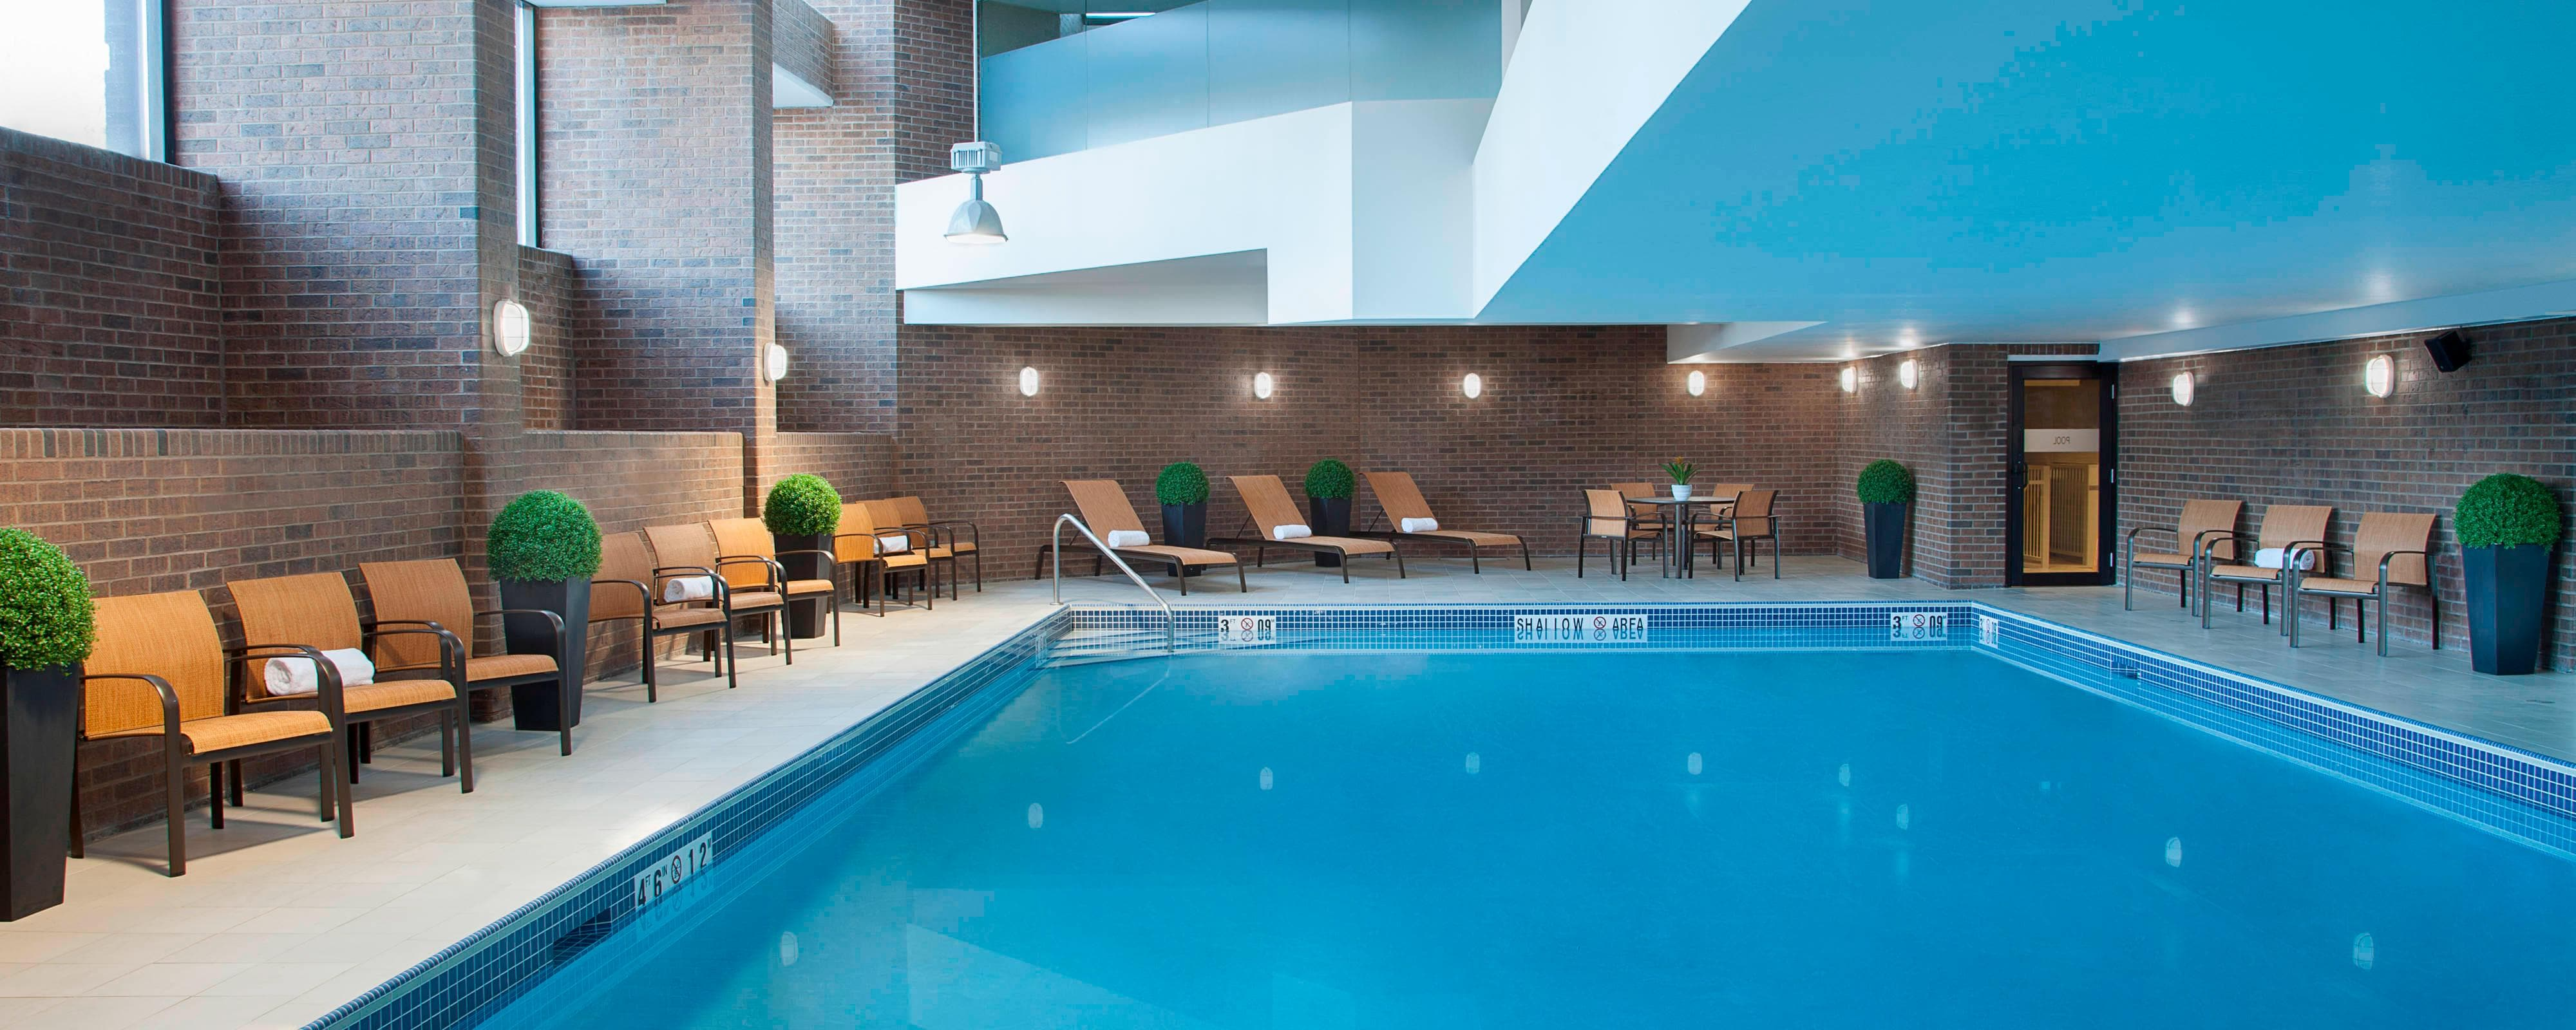 Pool in Markham Hotel